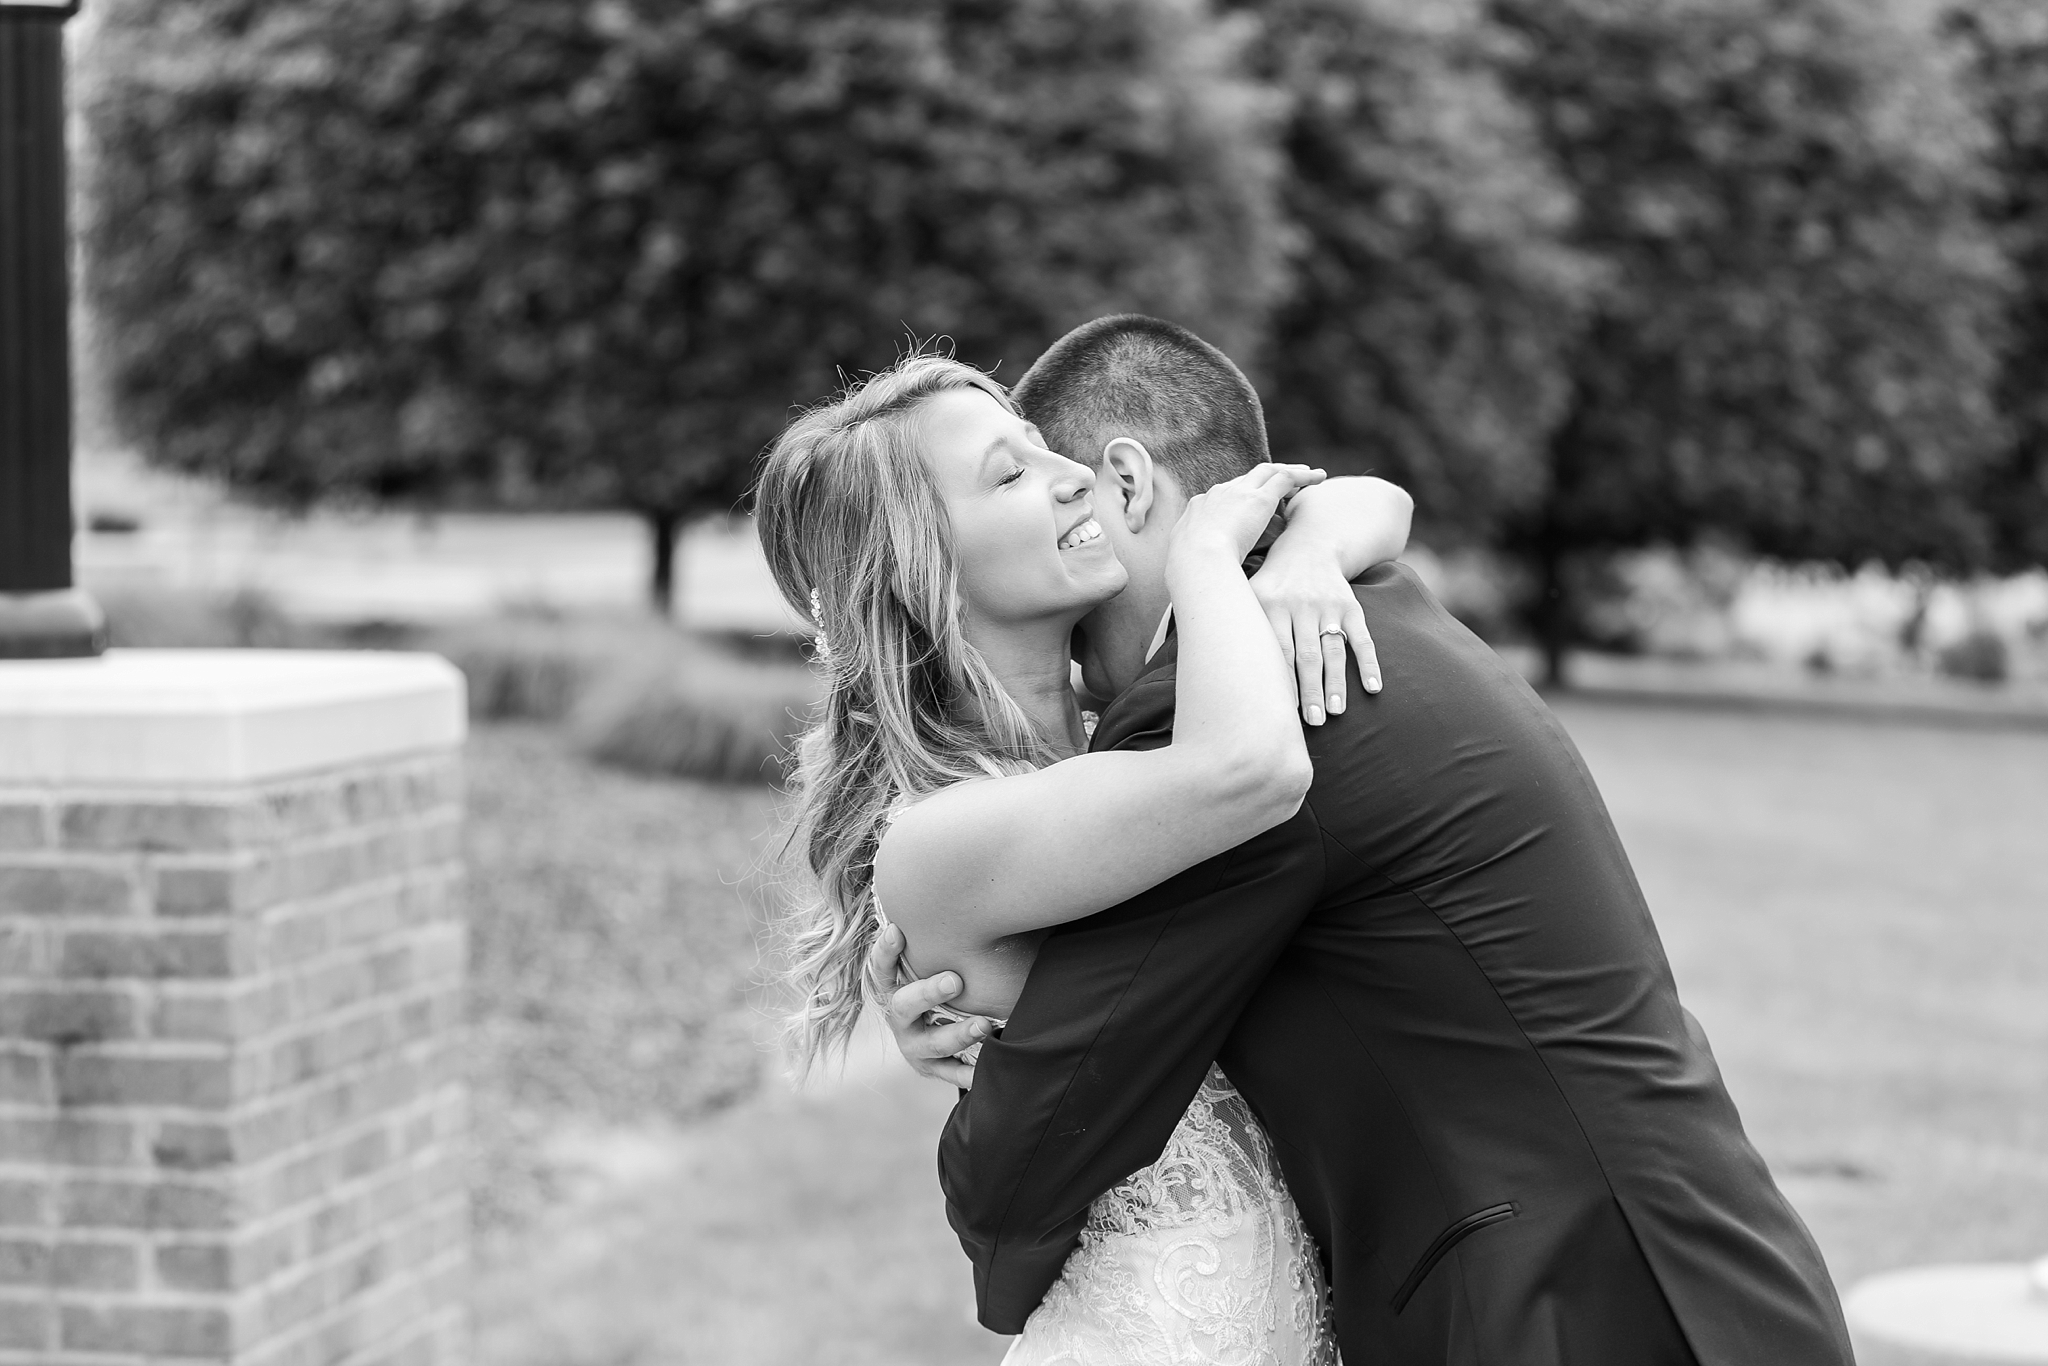 candid-romantic-wedding-photos-at-the-h-hotel-in-midland-michigan-by-courtney-carolyn-photography_0028.jpg